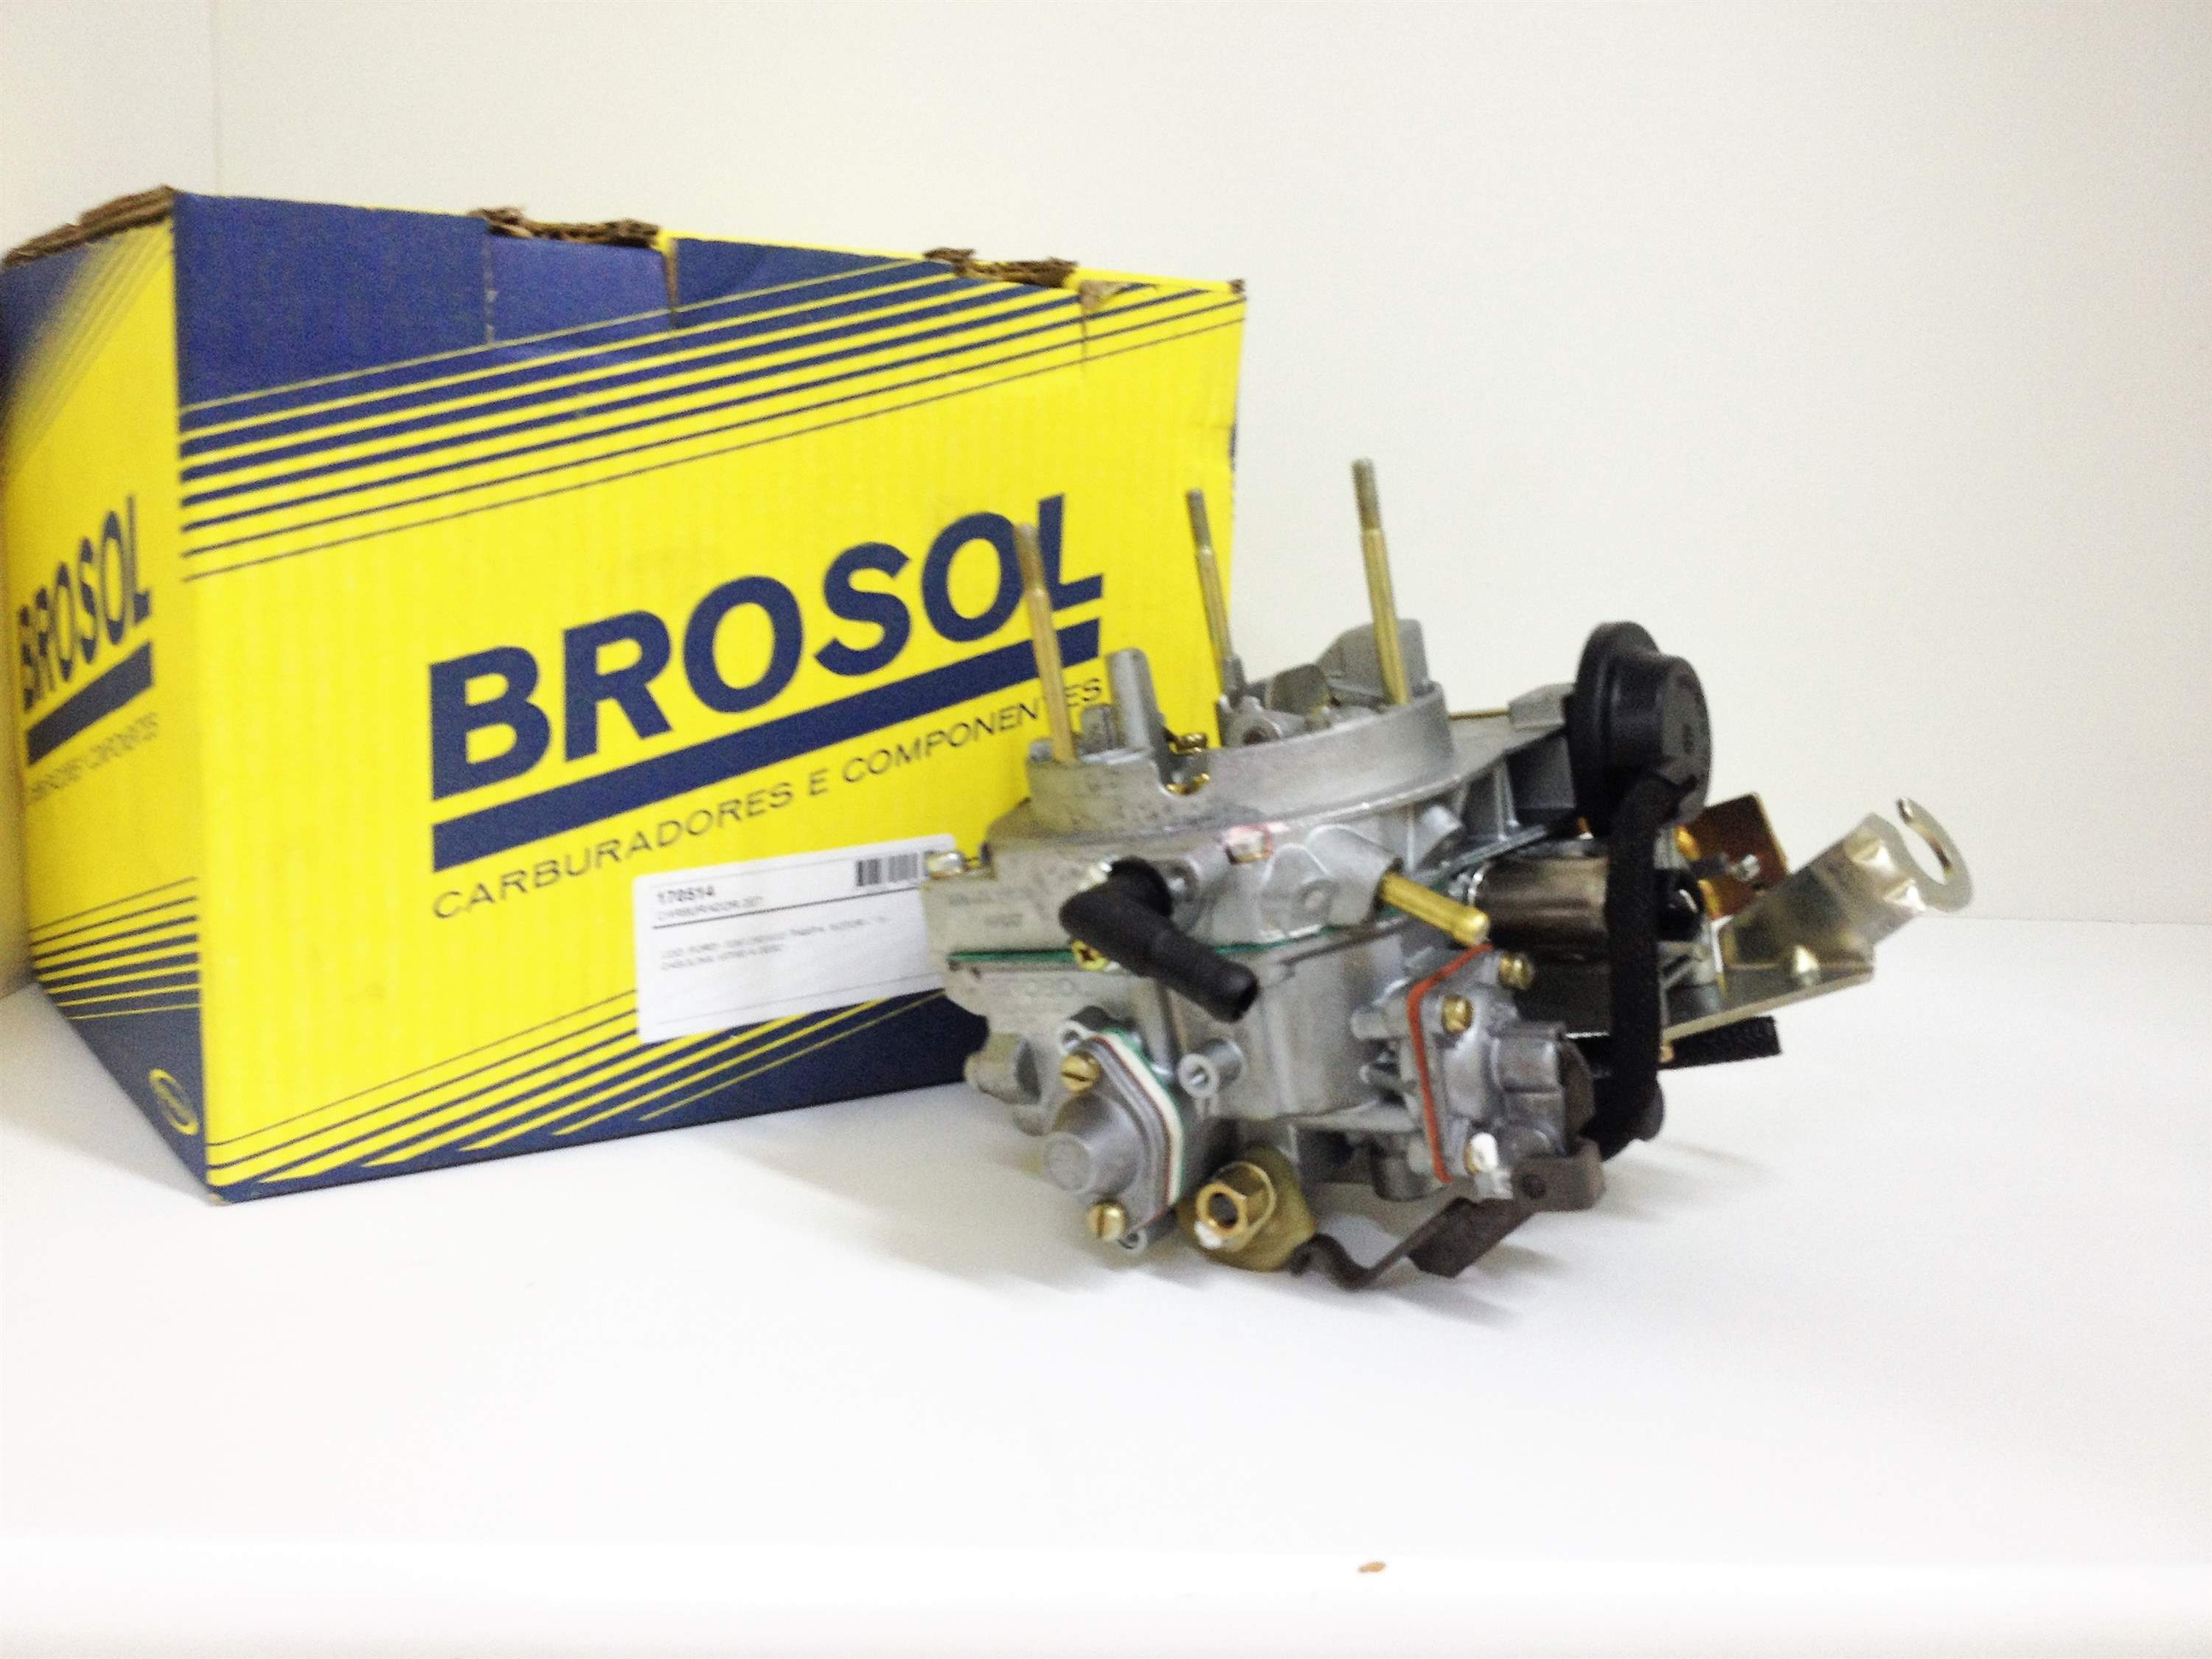 Carburador Brosol 2E Pampa 1.8 Ford Gas. (Novo)